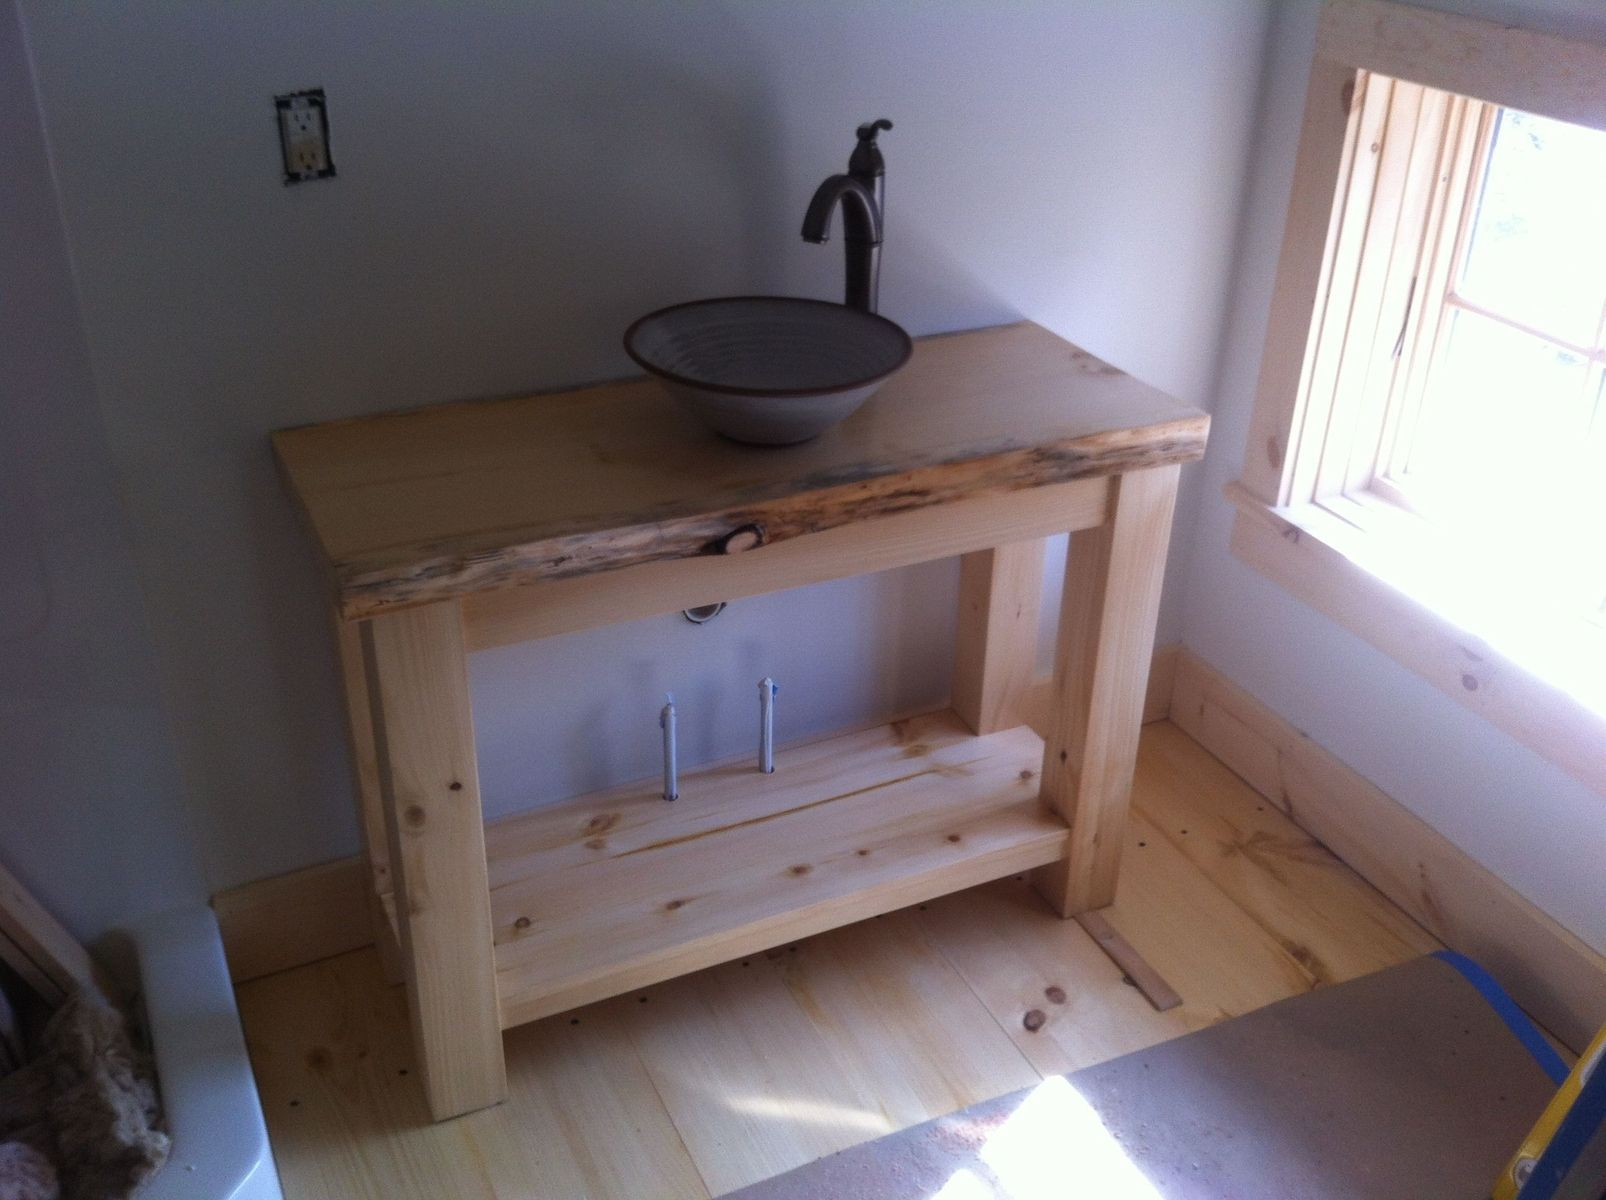 Handmade Rustic Pine Vanity With Vessel Sink By Wooden Hammer Llc CustomMa